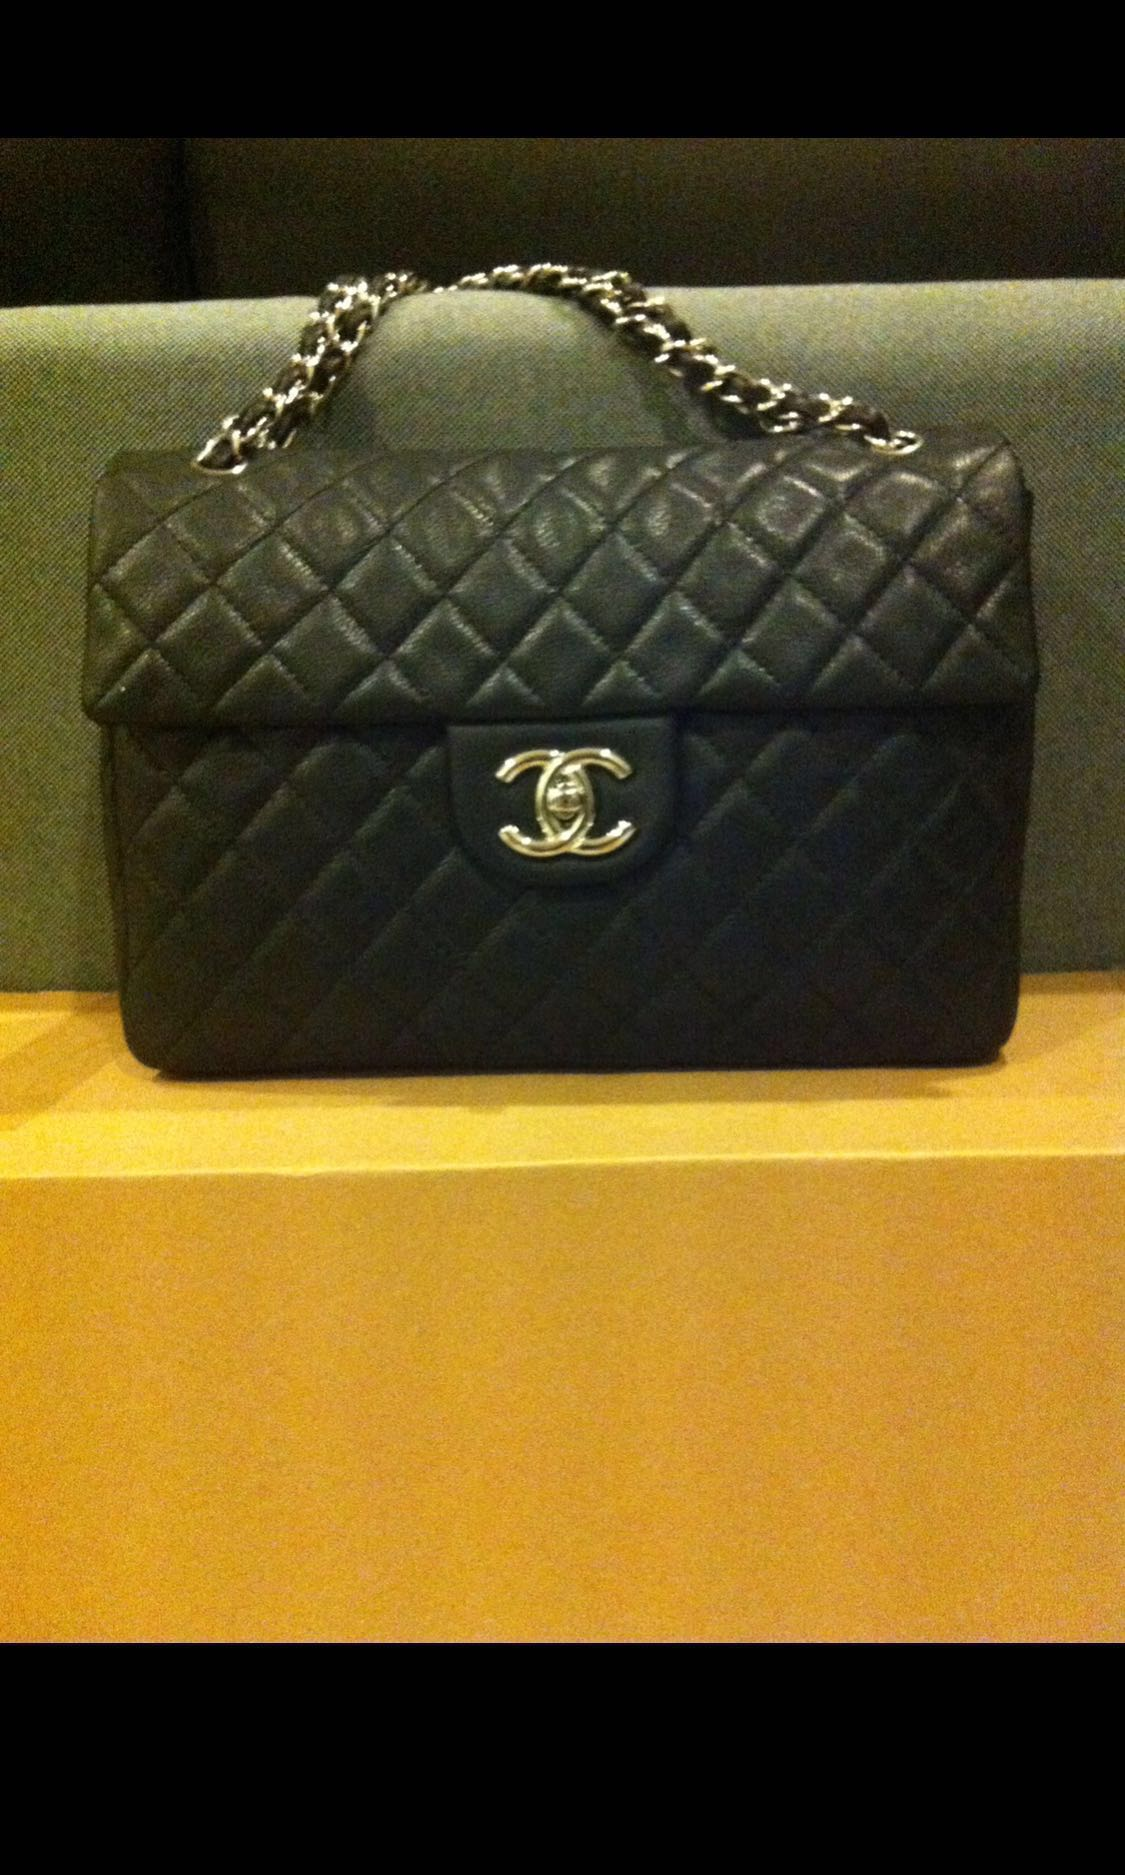 28cdc286de7e0c Chanel Maxi for Sale!, Luxury, Bags & Wallets, Handbags on Carousell